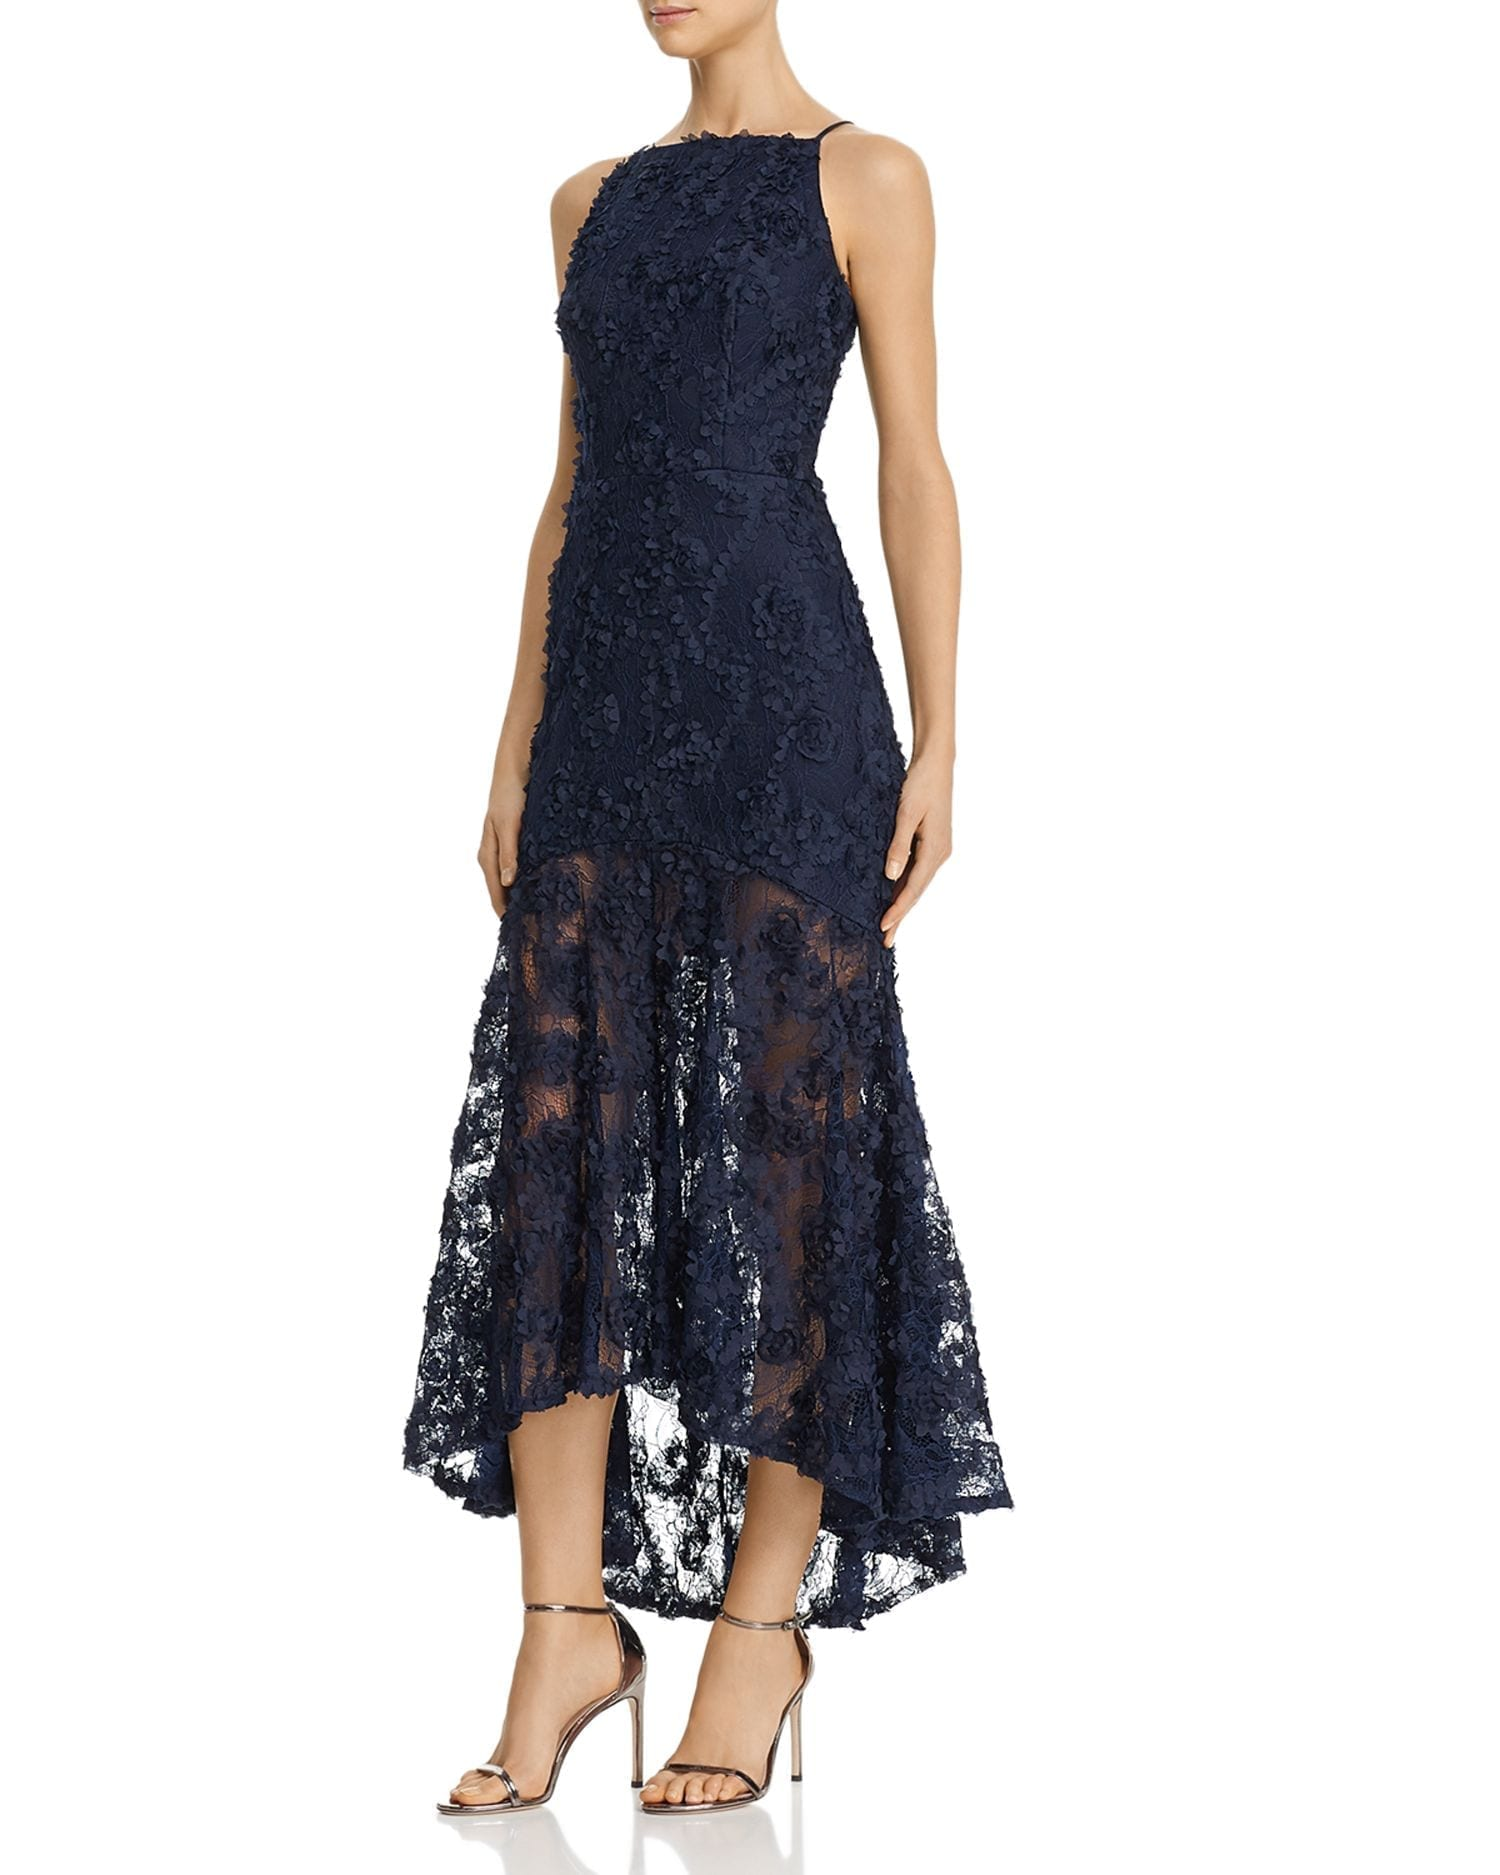 AVERY G Floral-Appliqué Maxi Dress